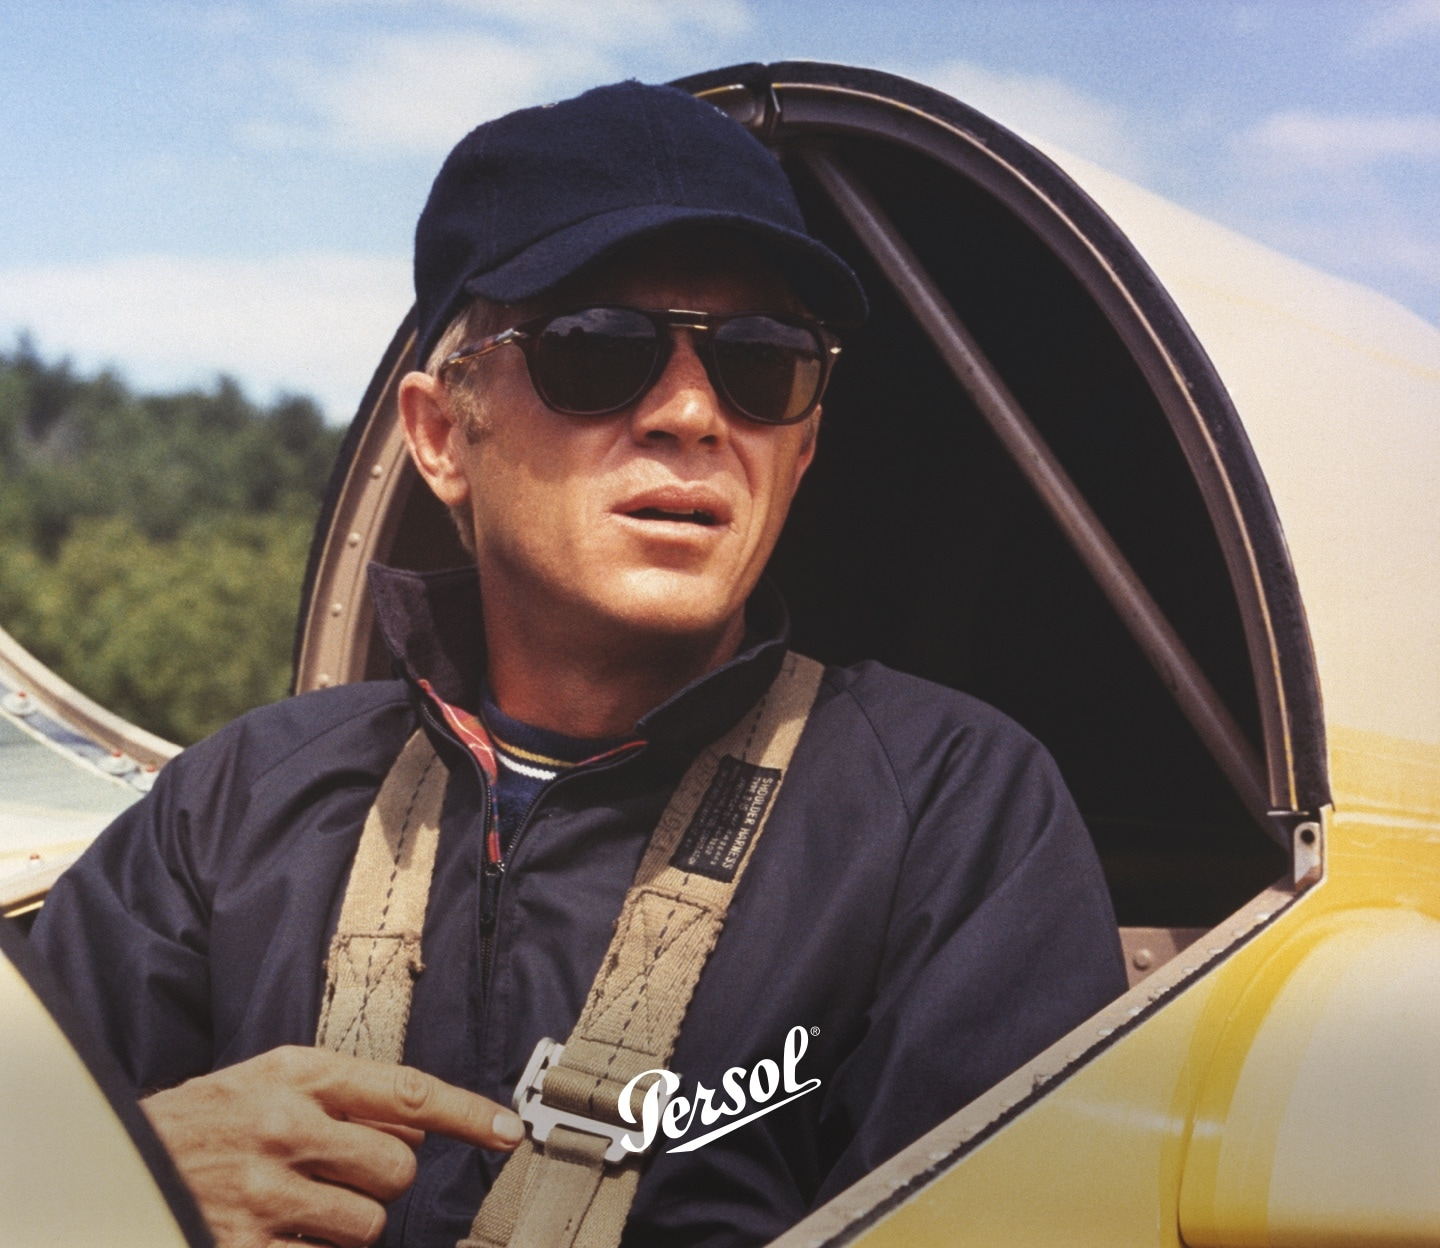 Persol exclusive image